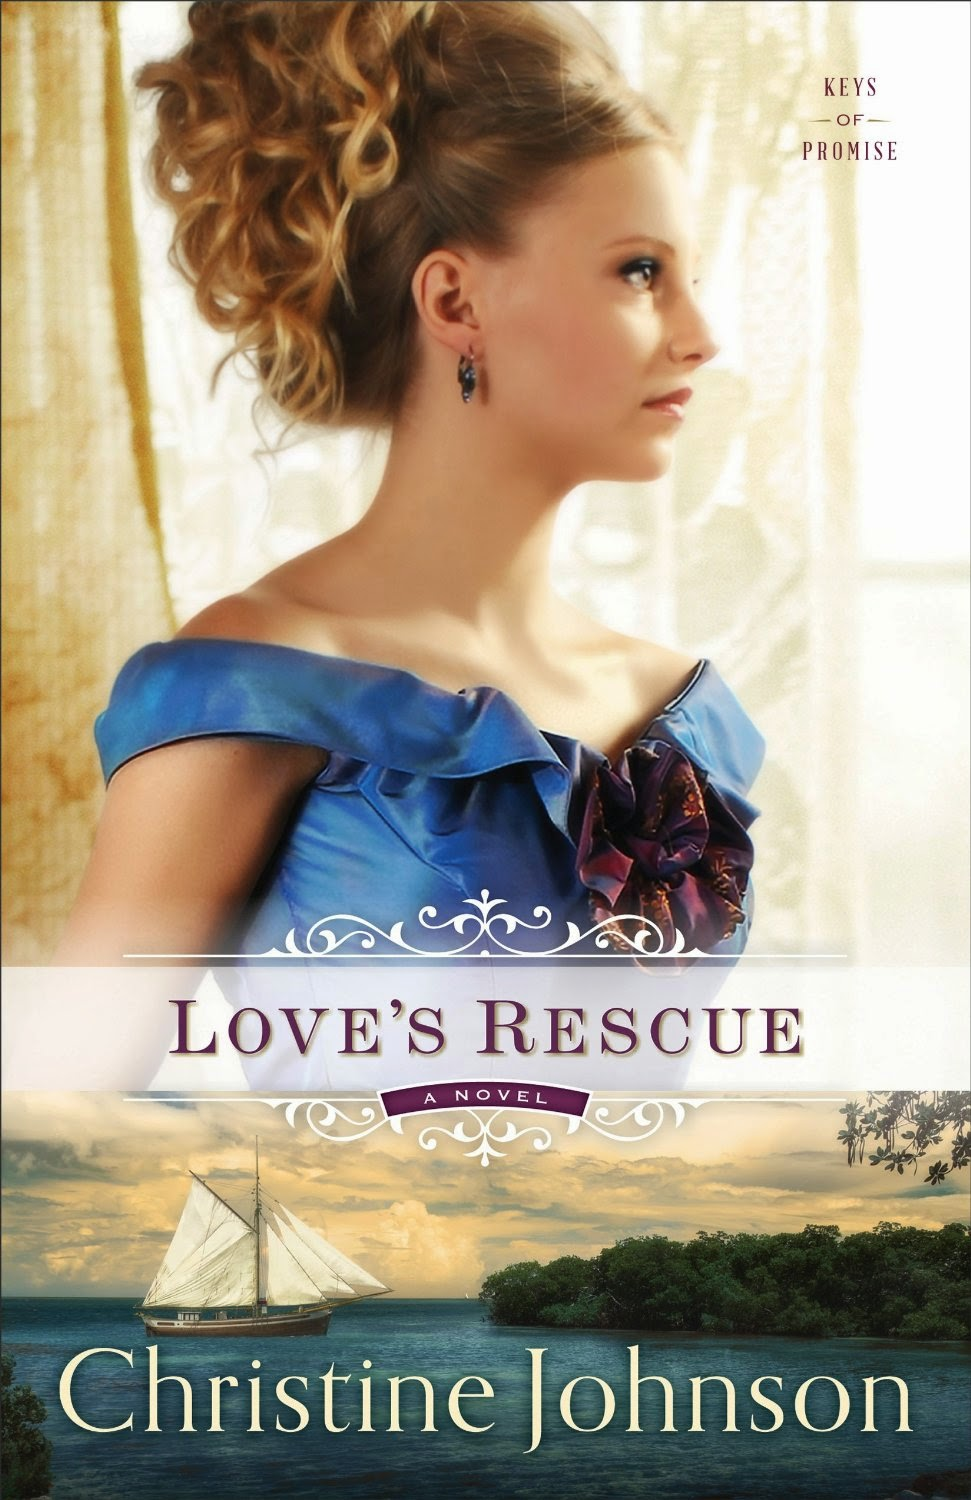 http://www.amazon.com/Loves-Rescue-Keys-Promise-Book-ebook/dp/B00QMSCM8W/ref=sr_1_1?s=books&ie=UTF8&qid=1434556276&sr=1-1&keywords=love%27s+rescue+christine+johnson